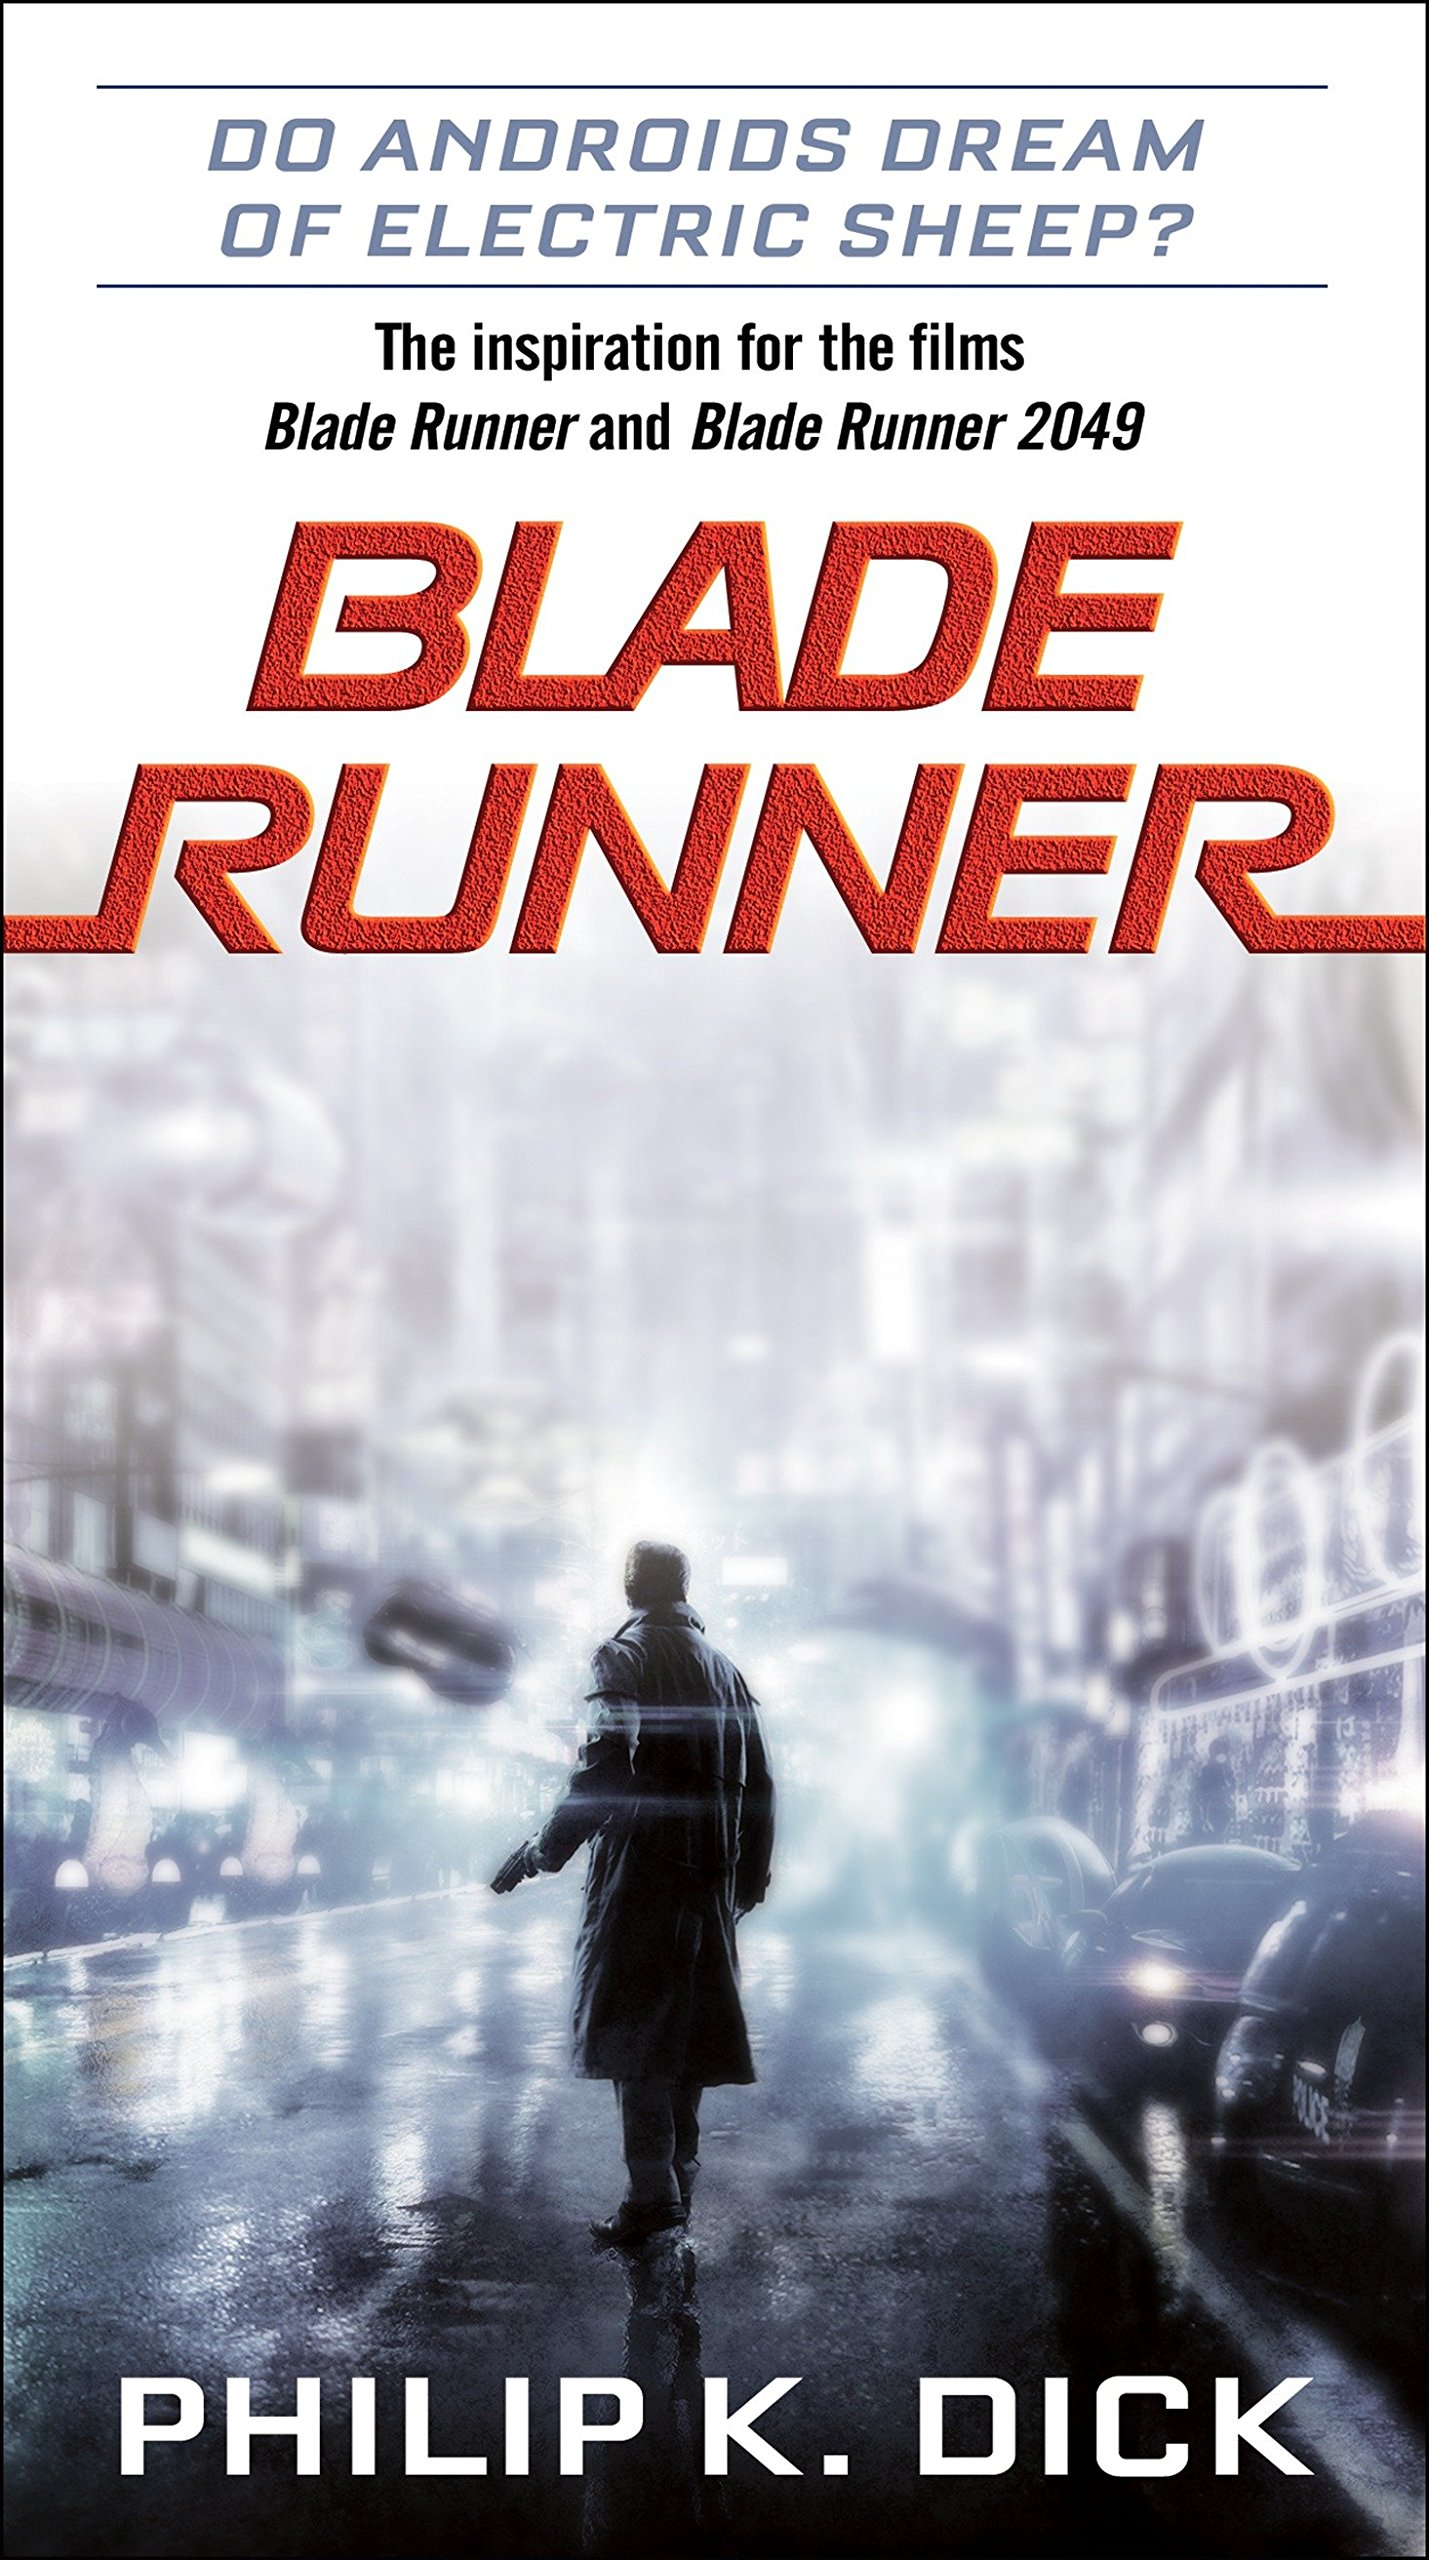 Image result for philip k. dick blade runner book amazon